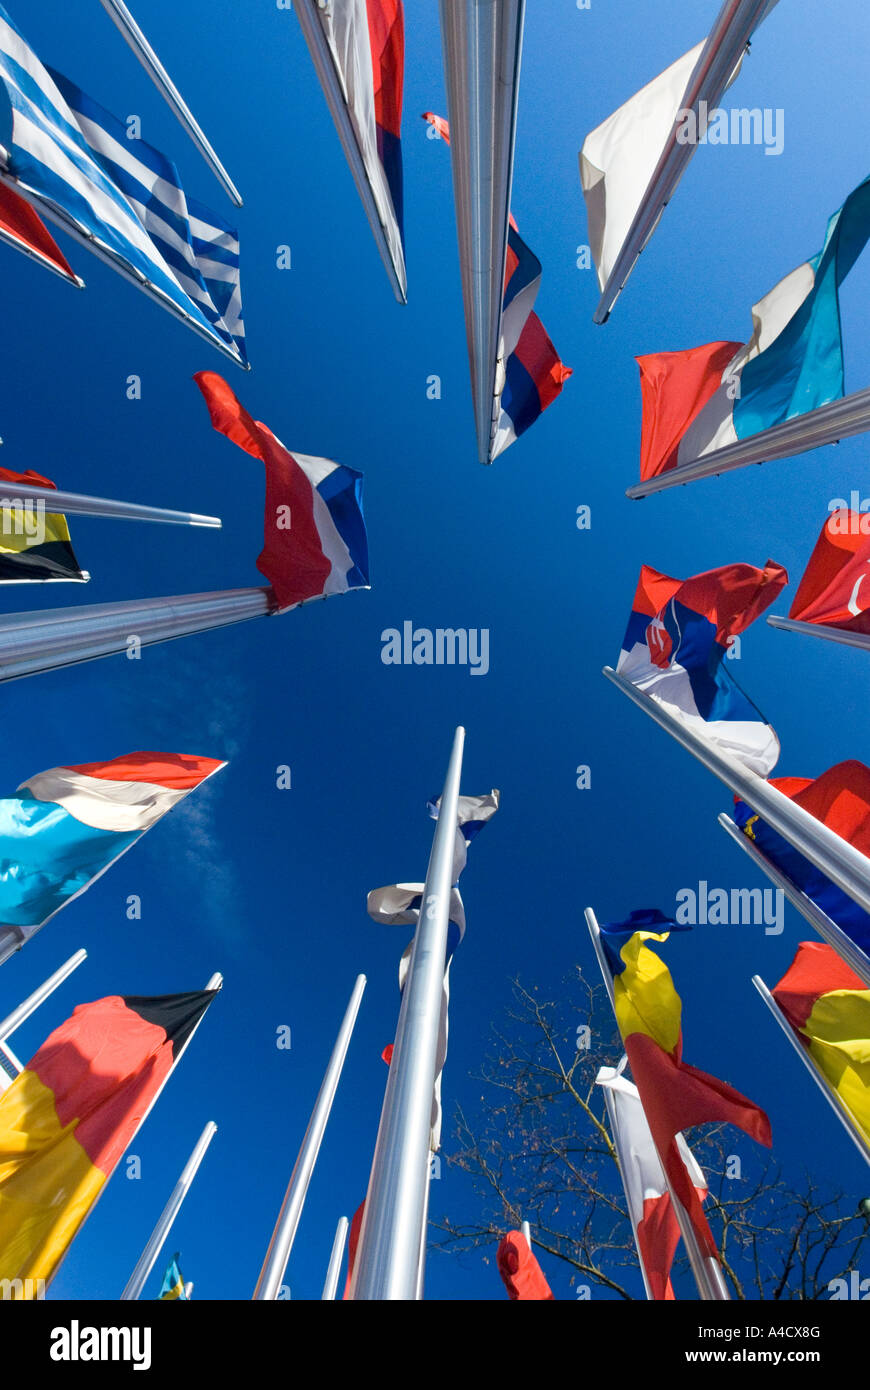 many european Flags standing together in blue sky Stock Photo